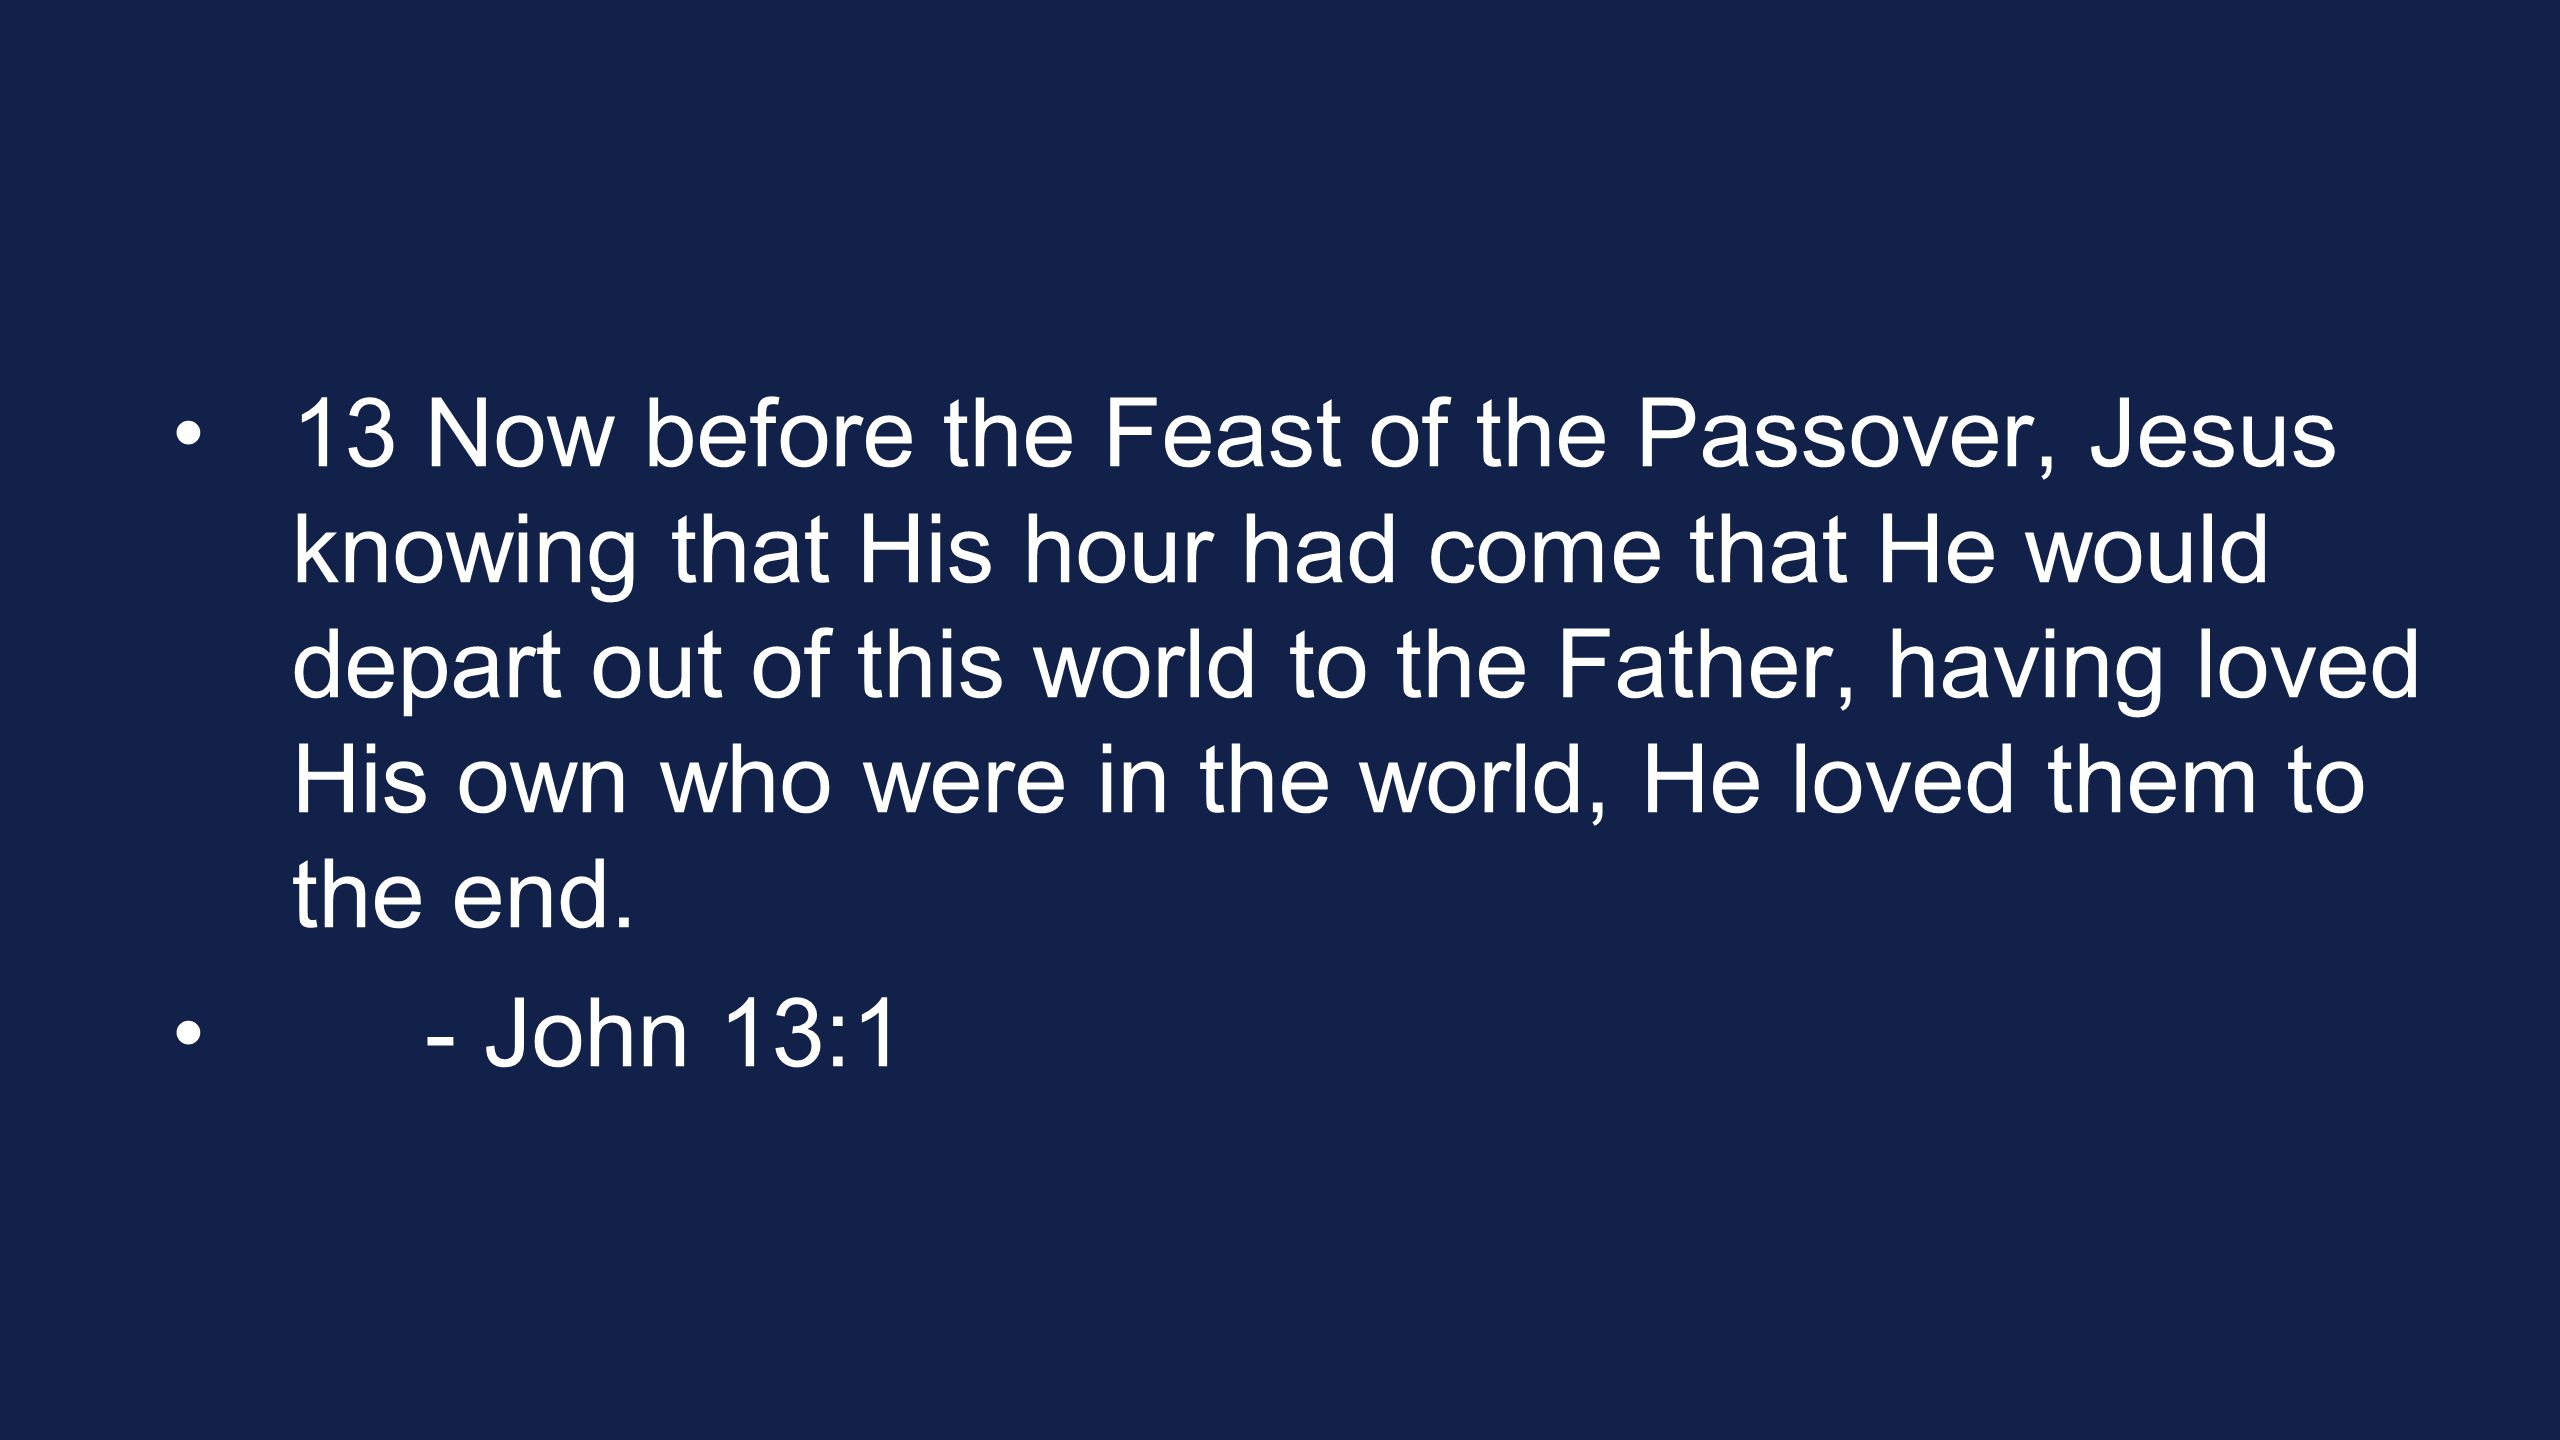 13 Now before the Feast of the Passover, Jesus knowing that His hour had come that He would depart out of this world to the Father, having loved His own who were in the world, He loved them to the end.